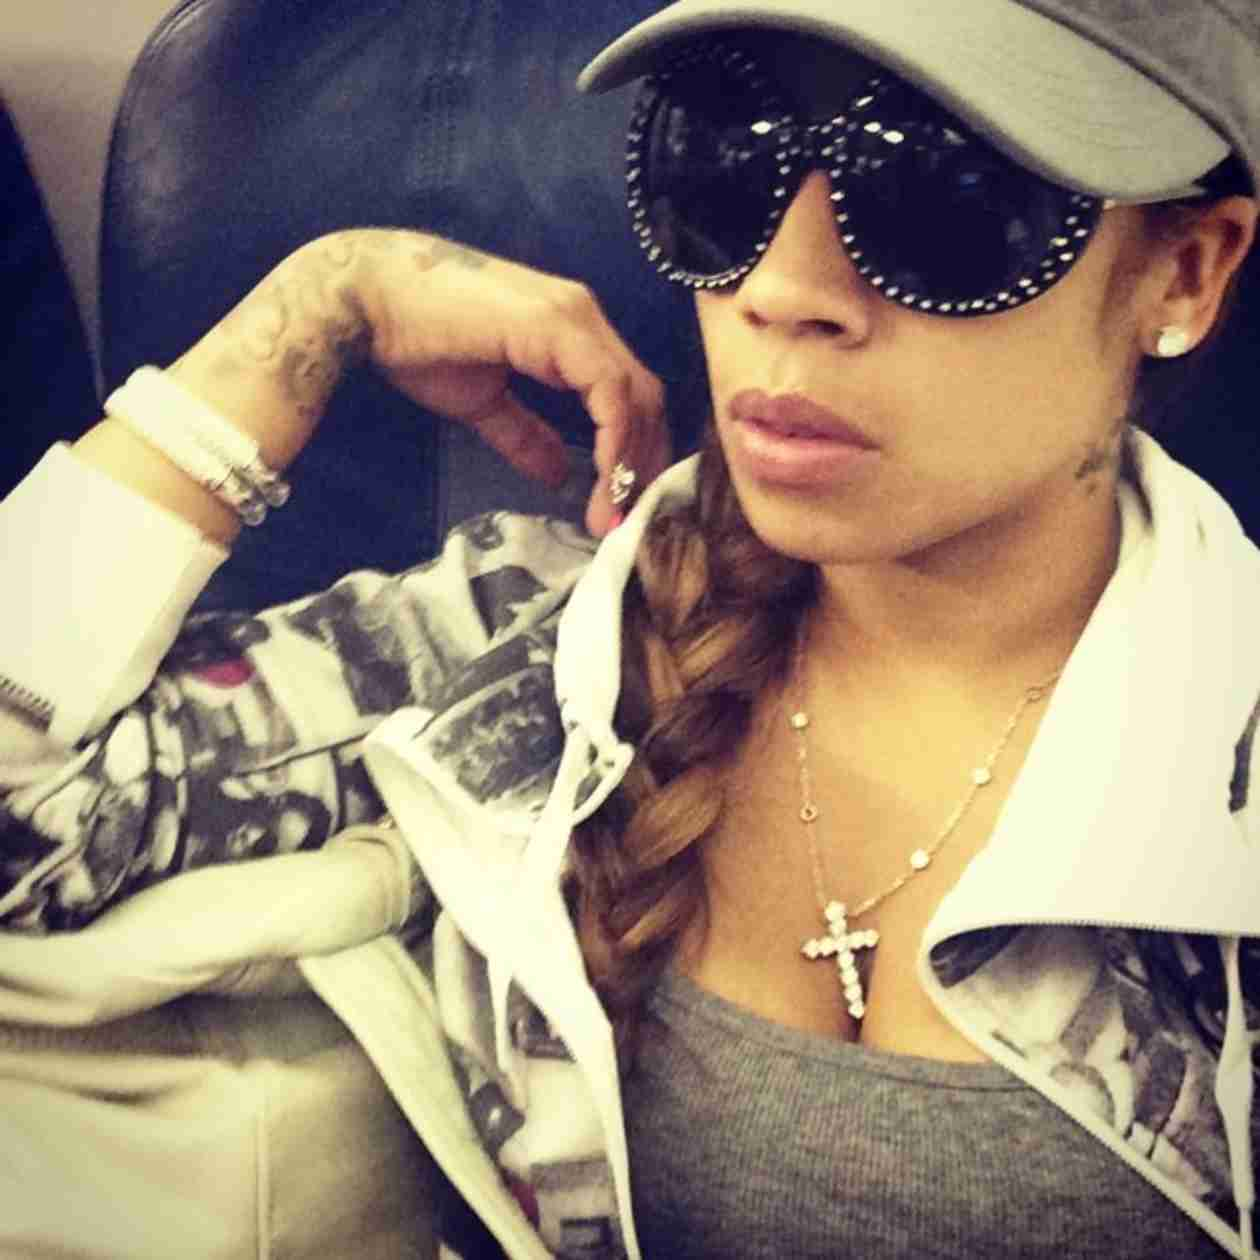 Keyshia Cole Responds to Husband Refusing to Divorce Her